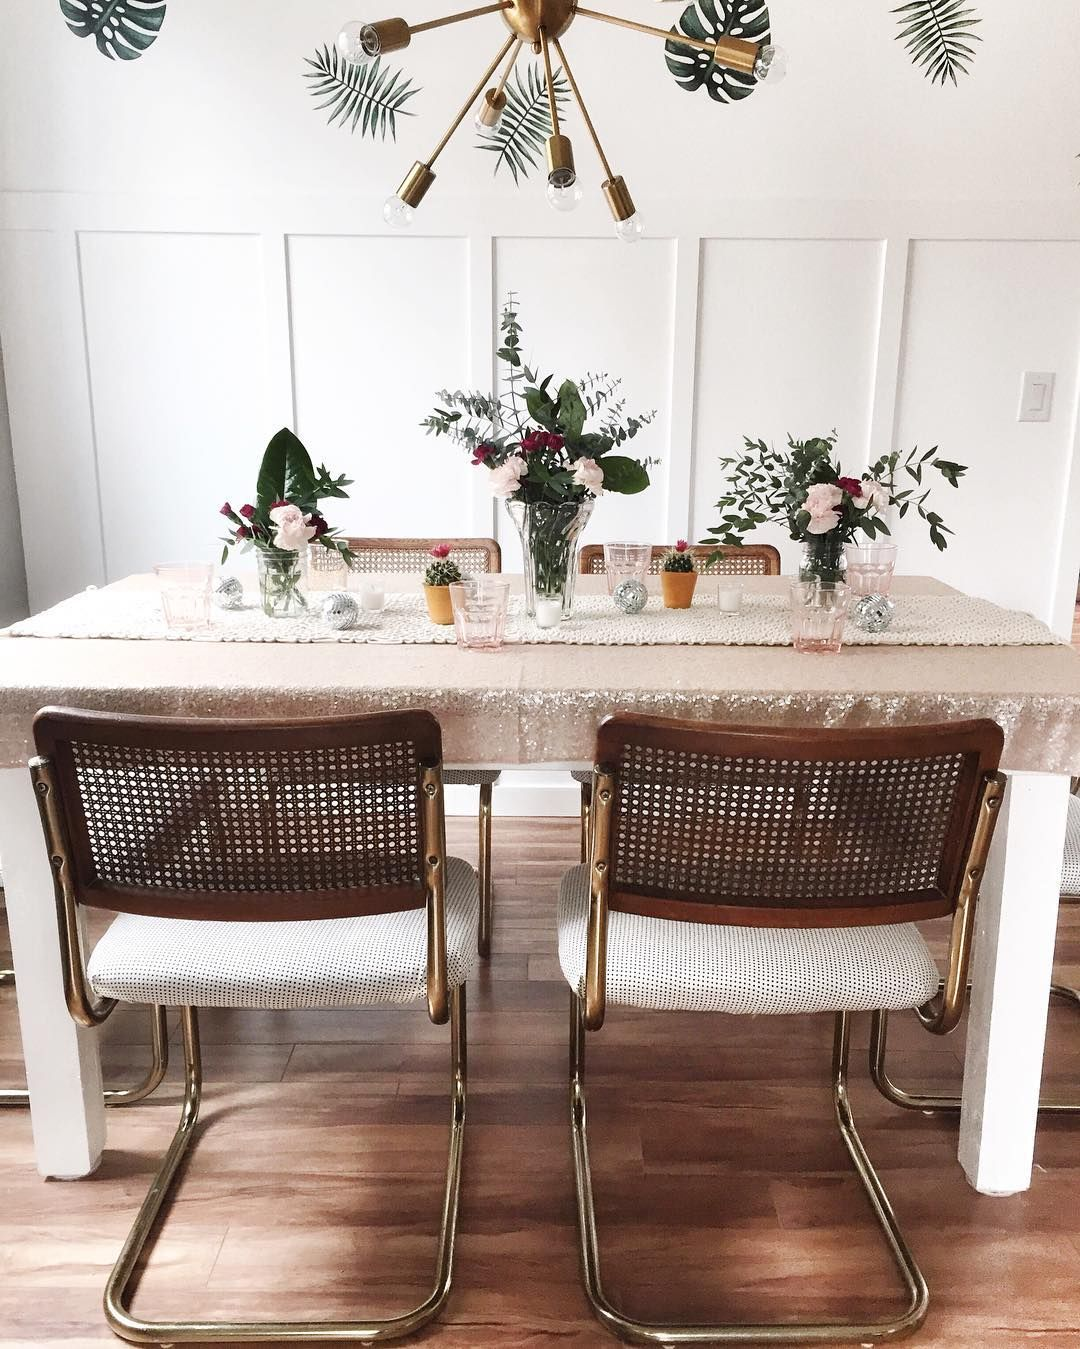 Siri Roozen Roozenabode  Instagram Photos And Videos Mesmerizing Cane Dining Room Chairs Inspiration